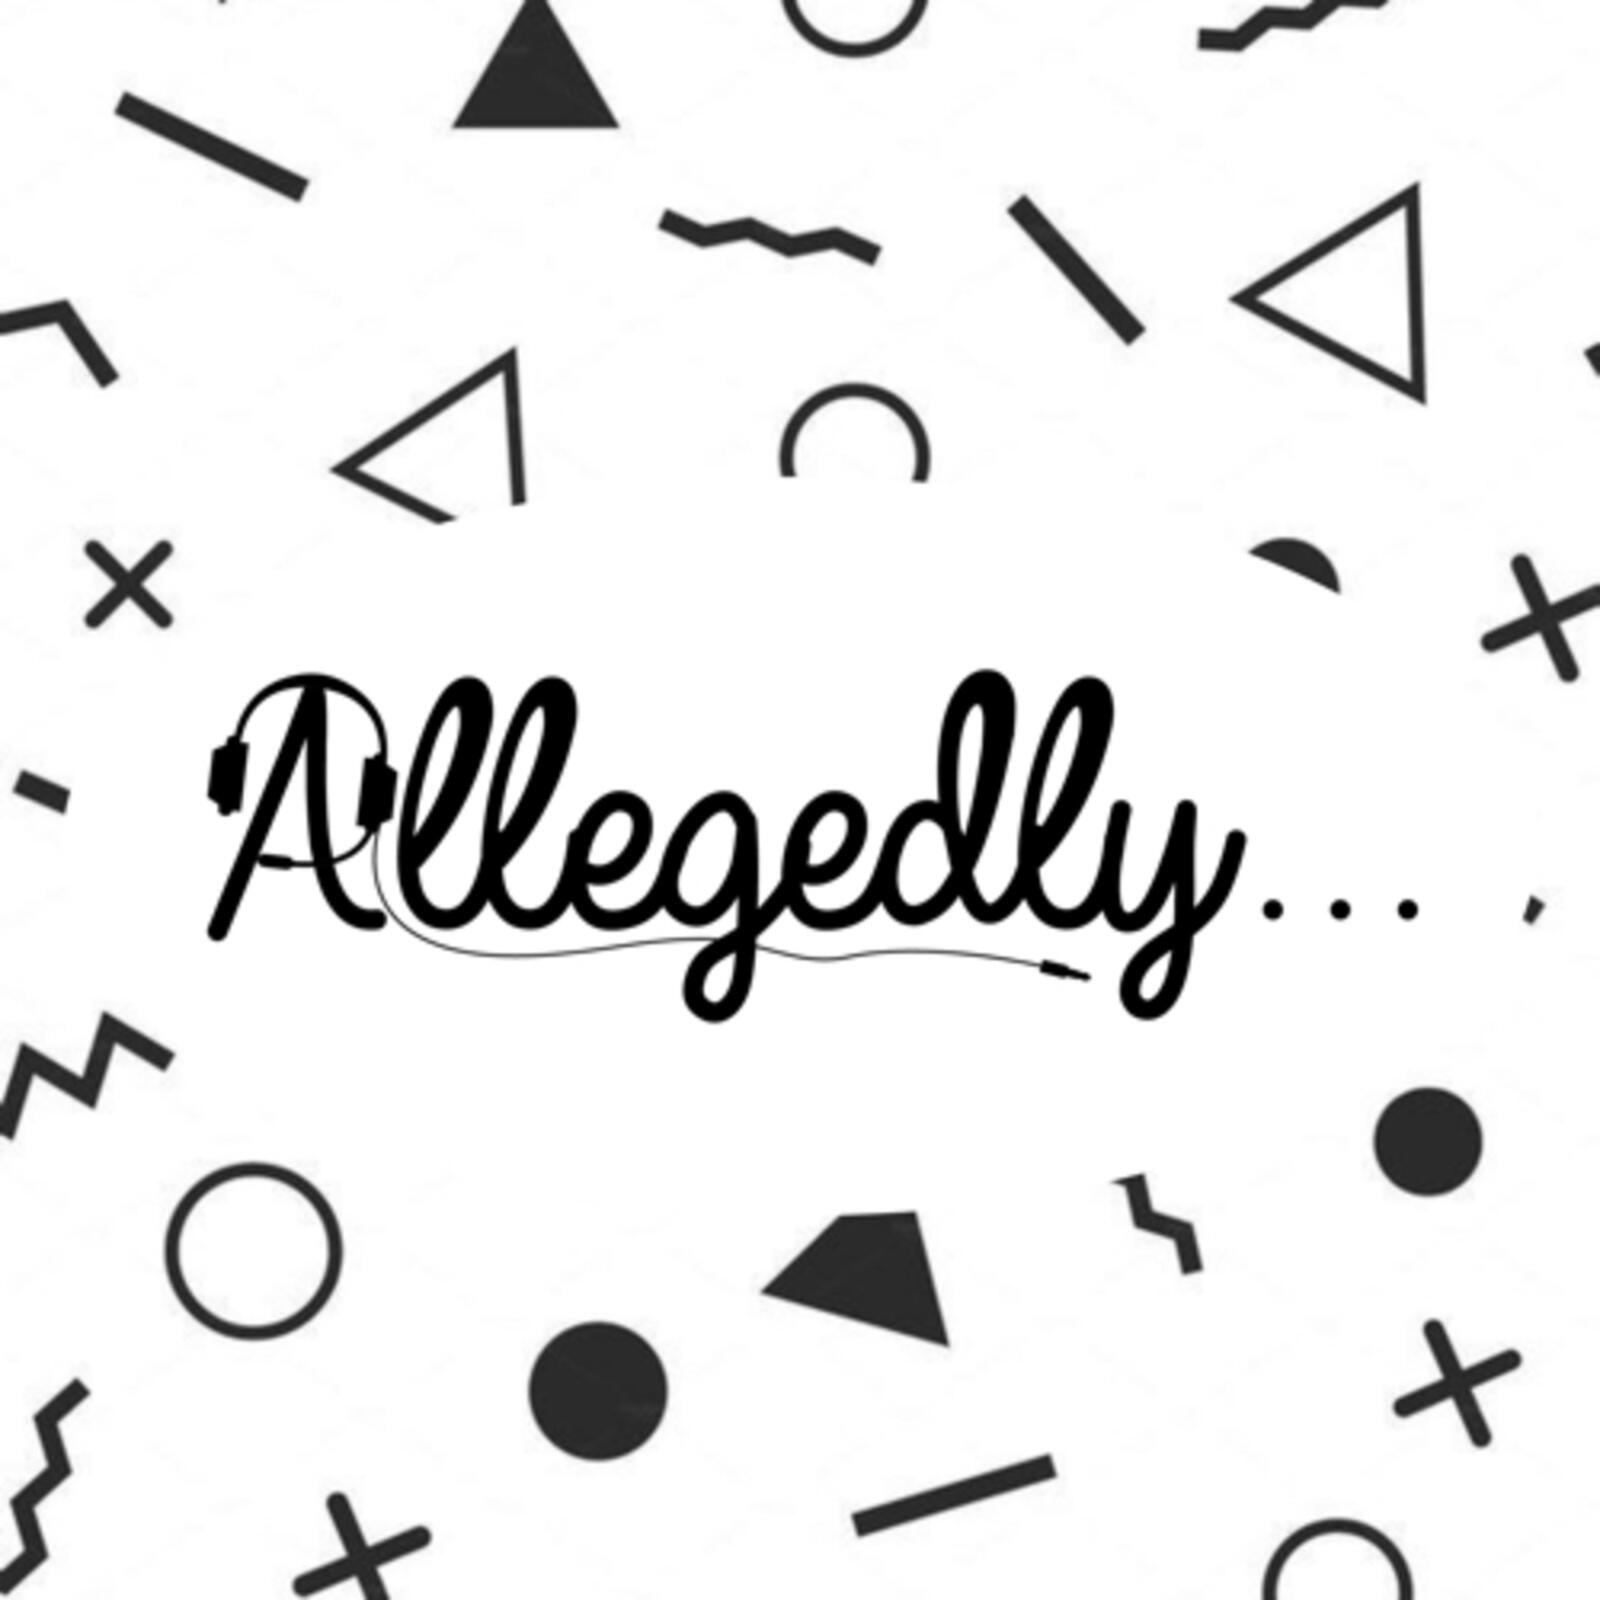 1: allegedly…we have a podcast